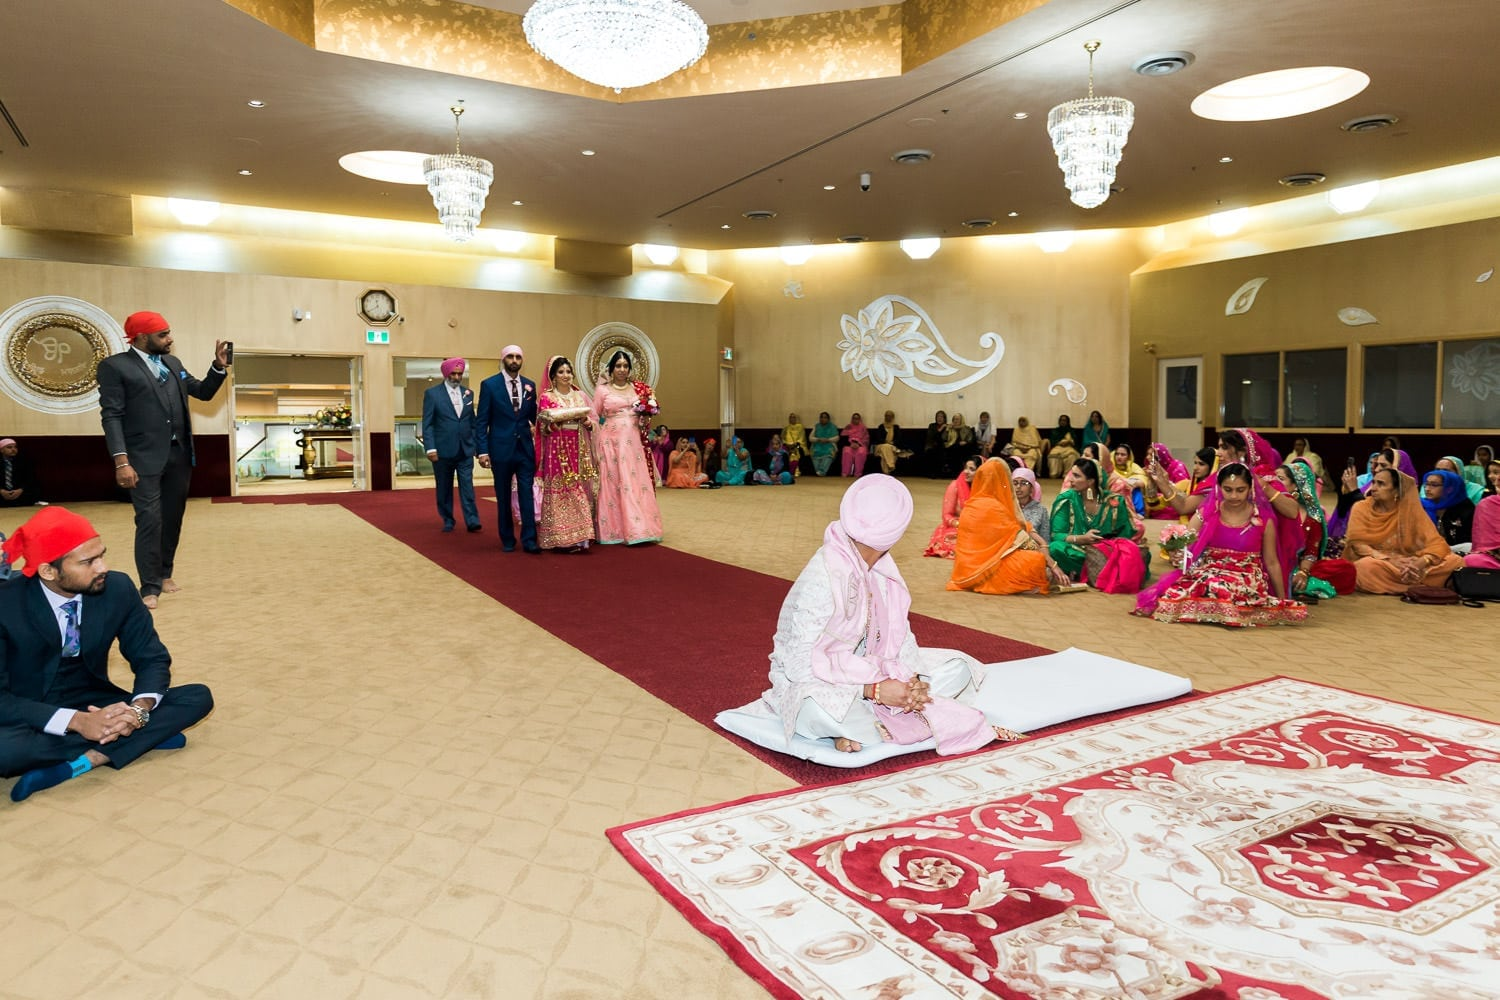 Indian groom seeing bride for the first time at the temple | Indian wedding photography Vancouver